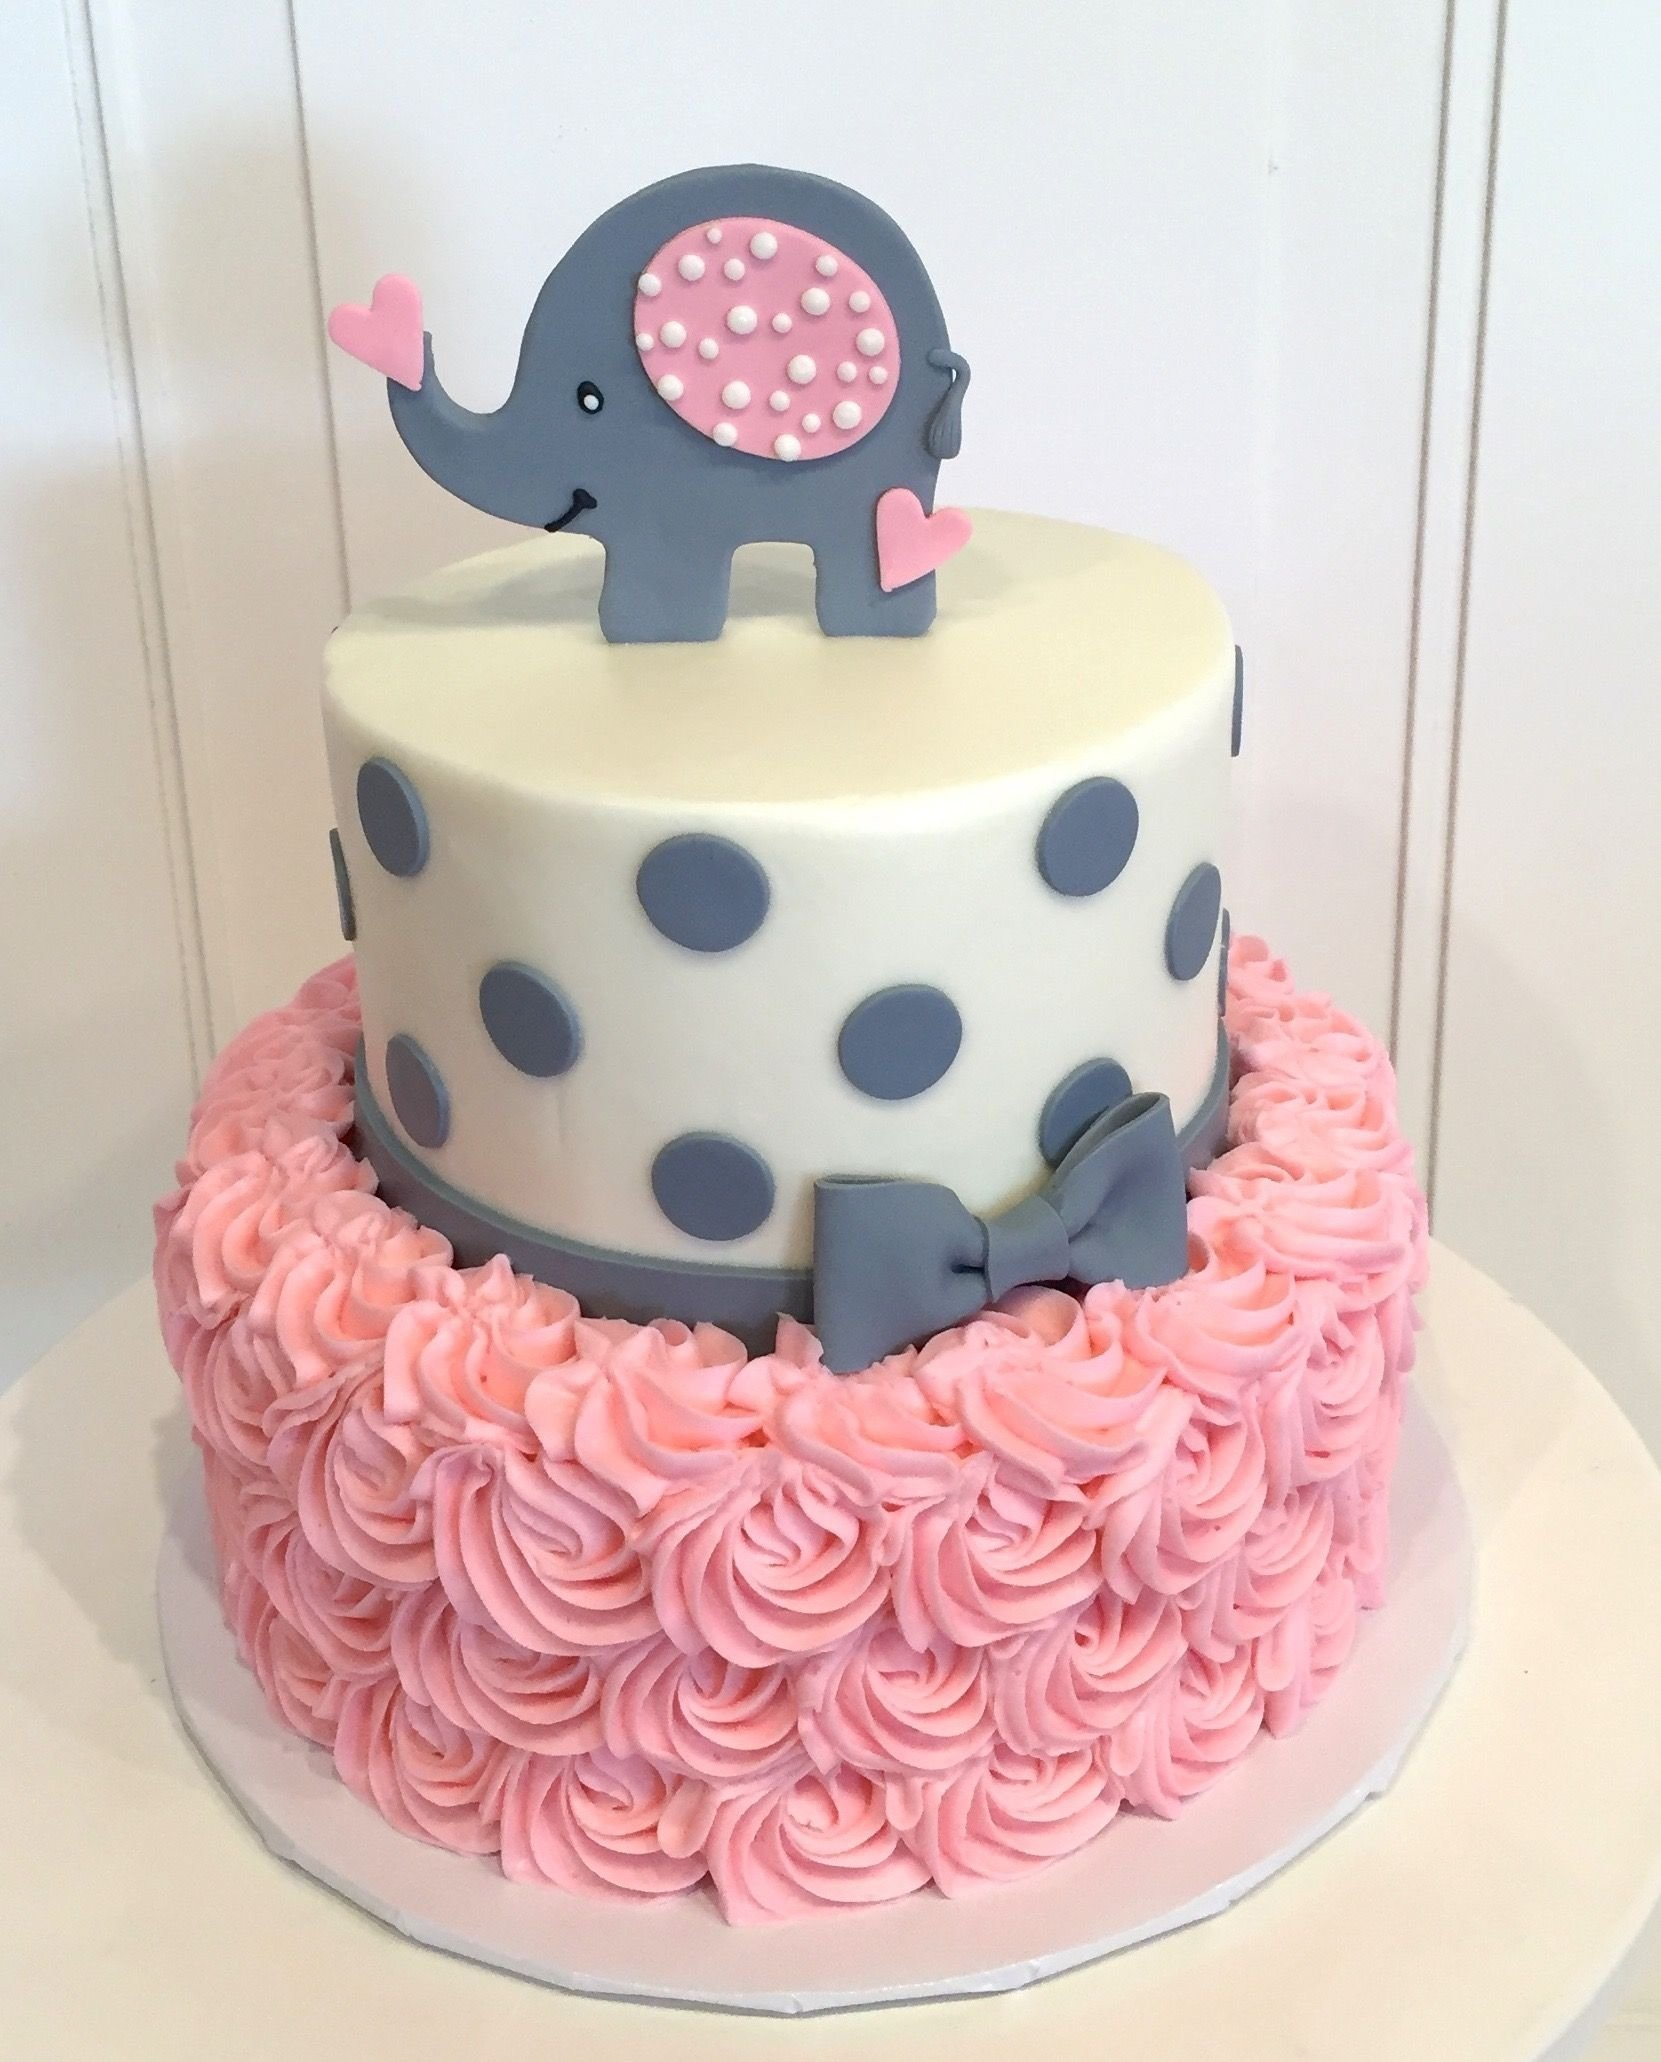 10 Stunning Baby Shower Cake Ideas For A Girl baby shower cake with elephant on top the cake is a pink rosette 1 2021